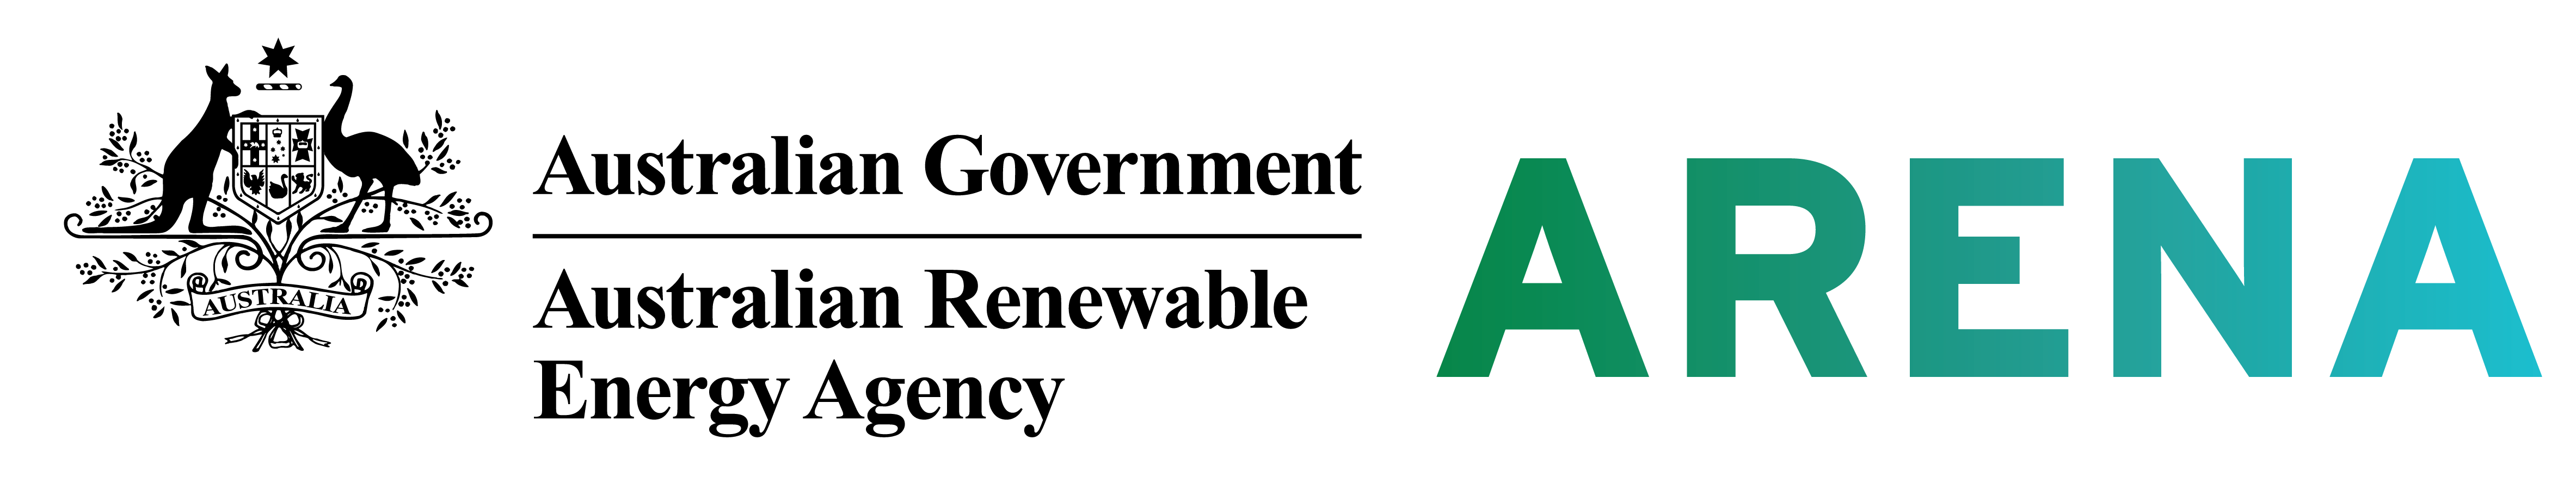 Australian Renewable Energy Agency logo